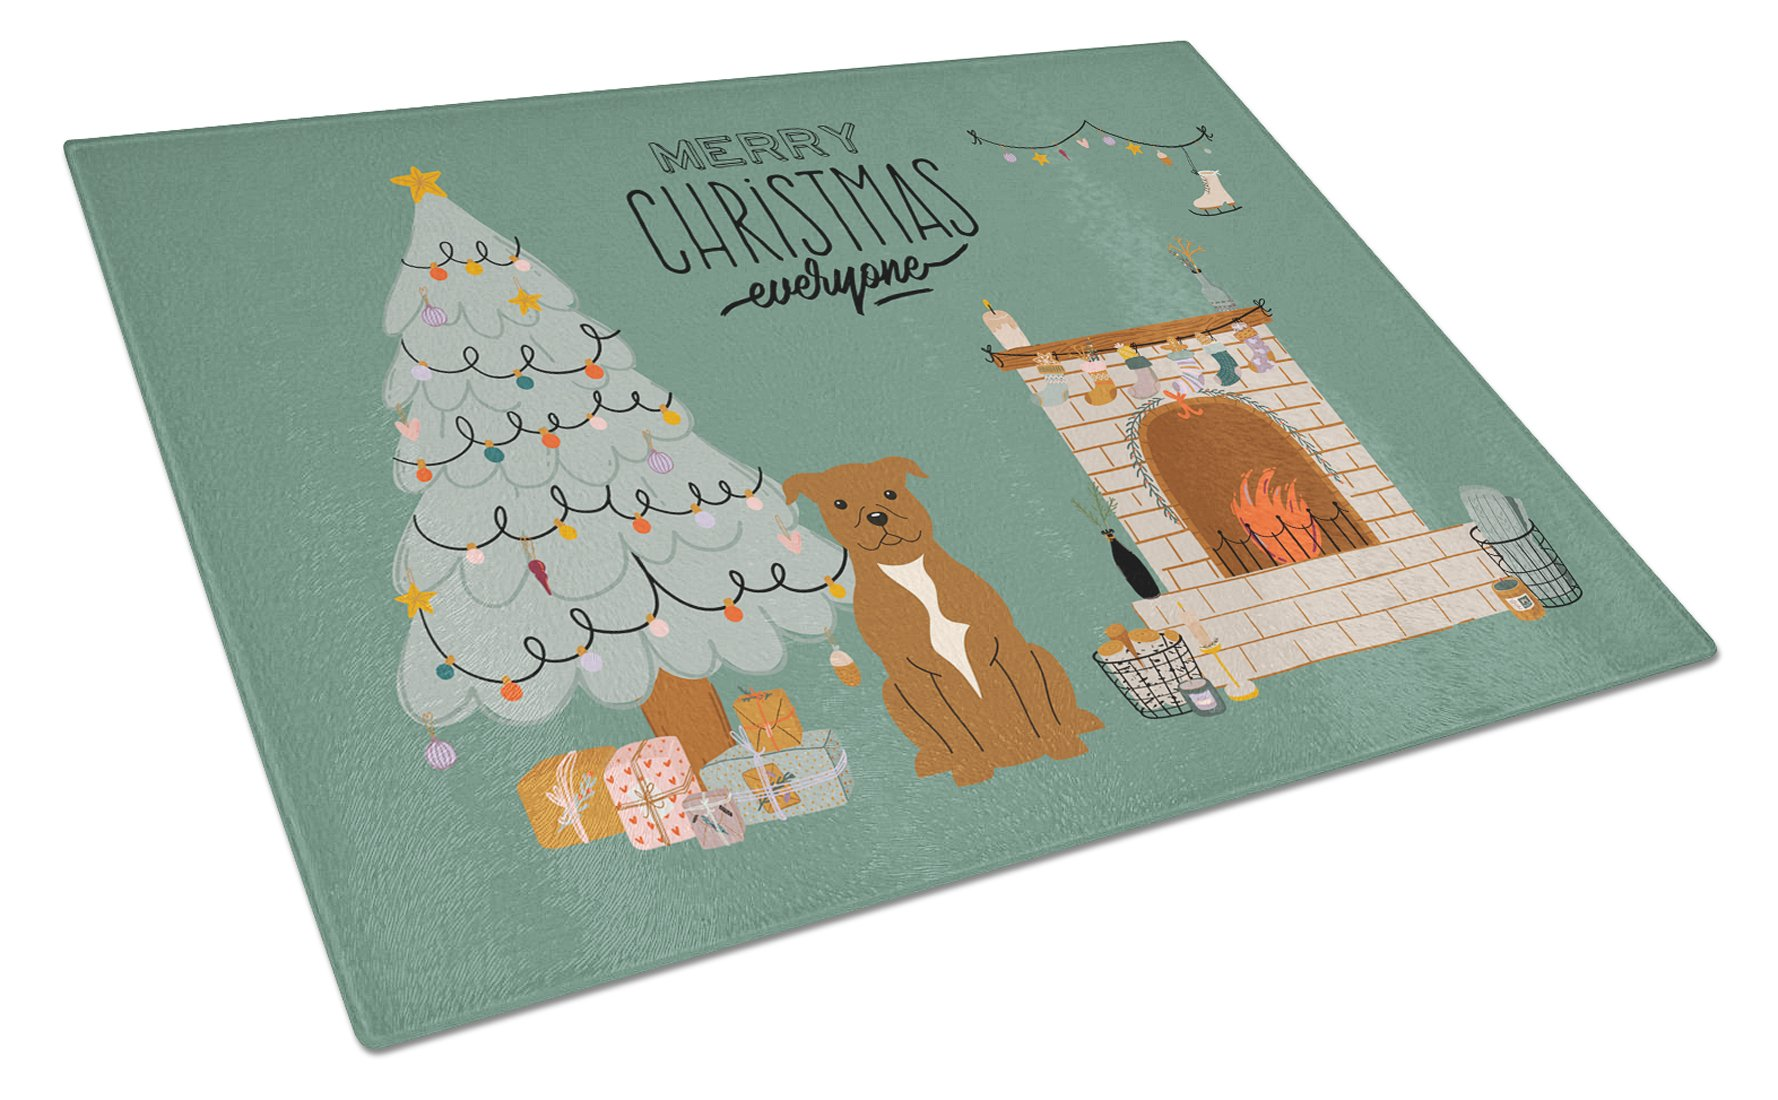 Brown Staffordshire Bull Terrier Christmas Everyone Glass Cutting Board Large CK7610LCB by Caroline's Treasures